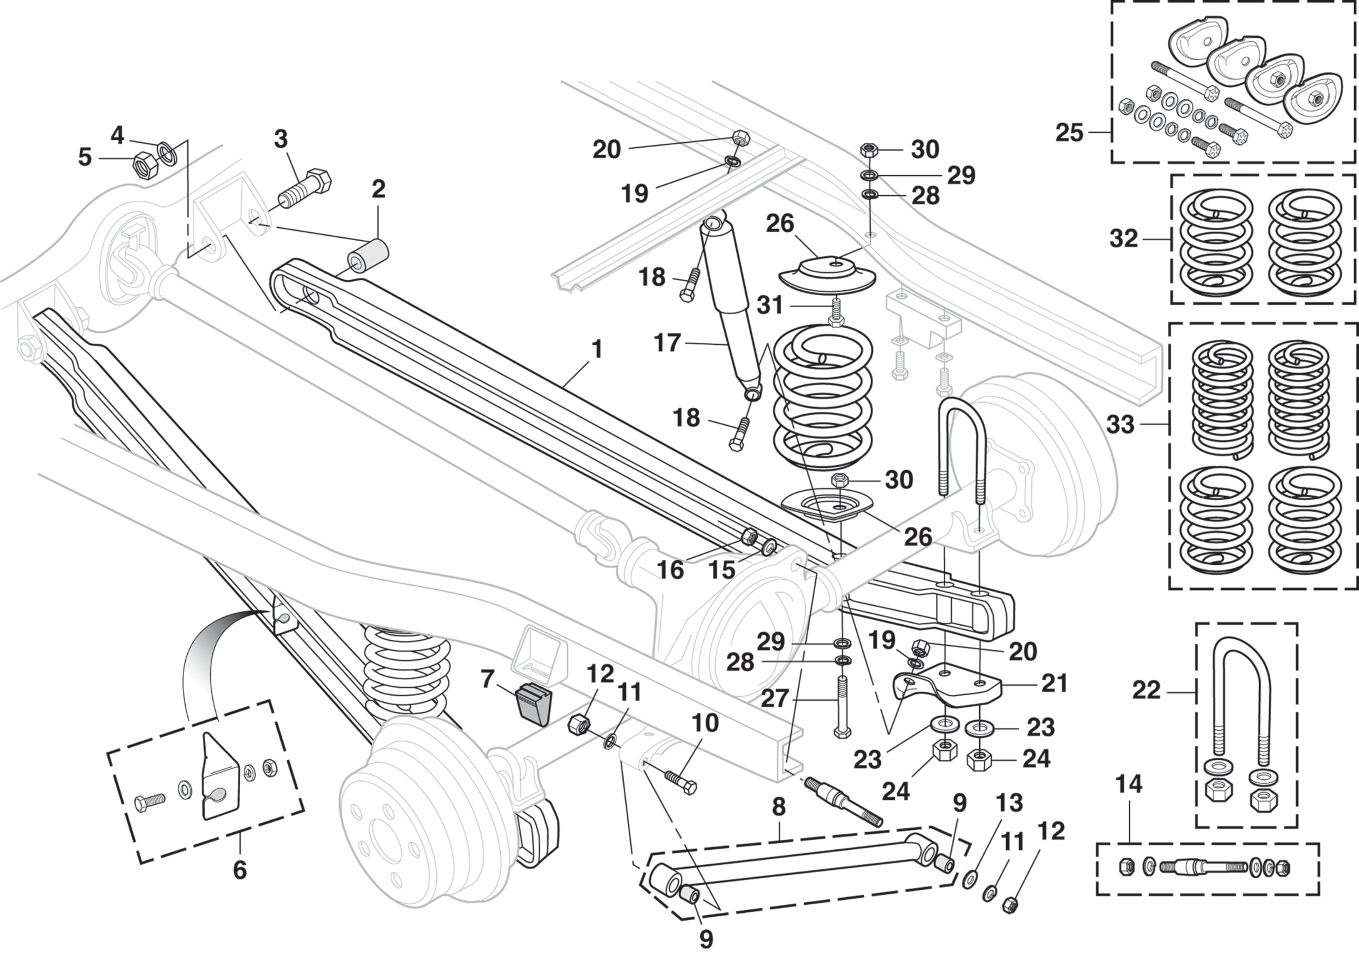 Rear Suspension With Coil Springs